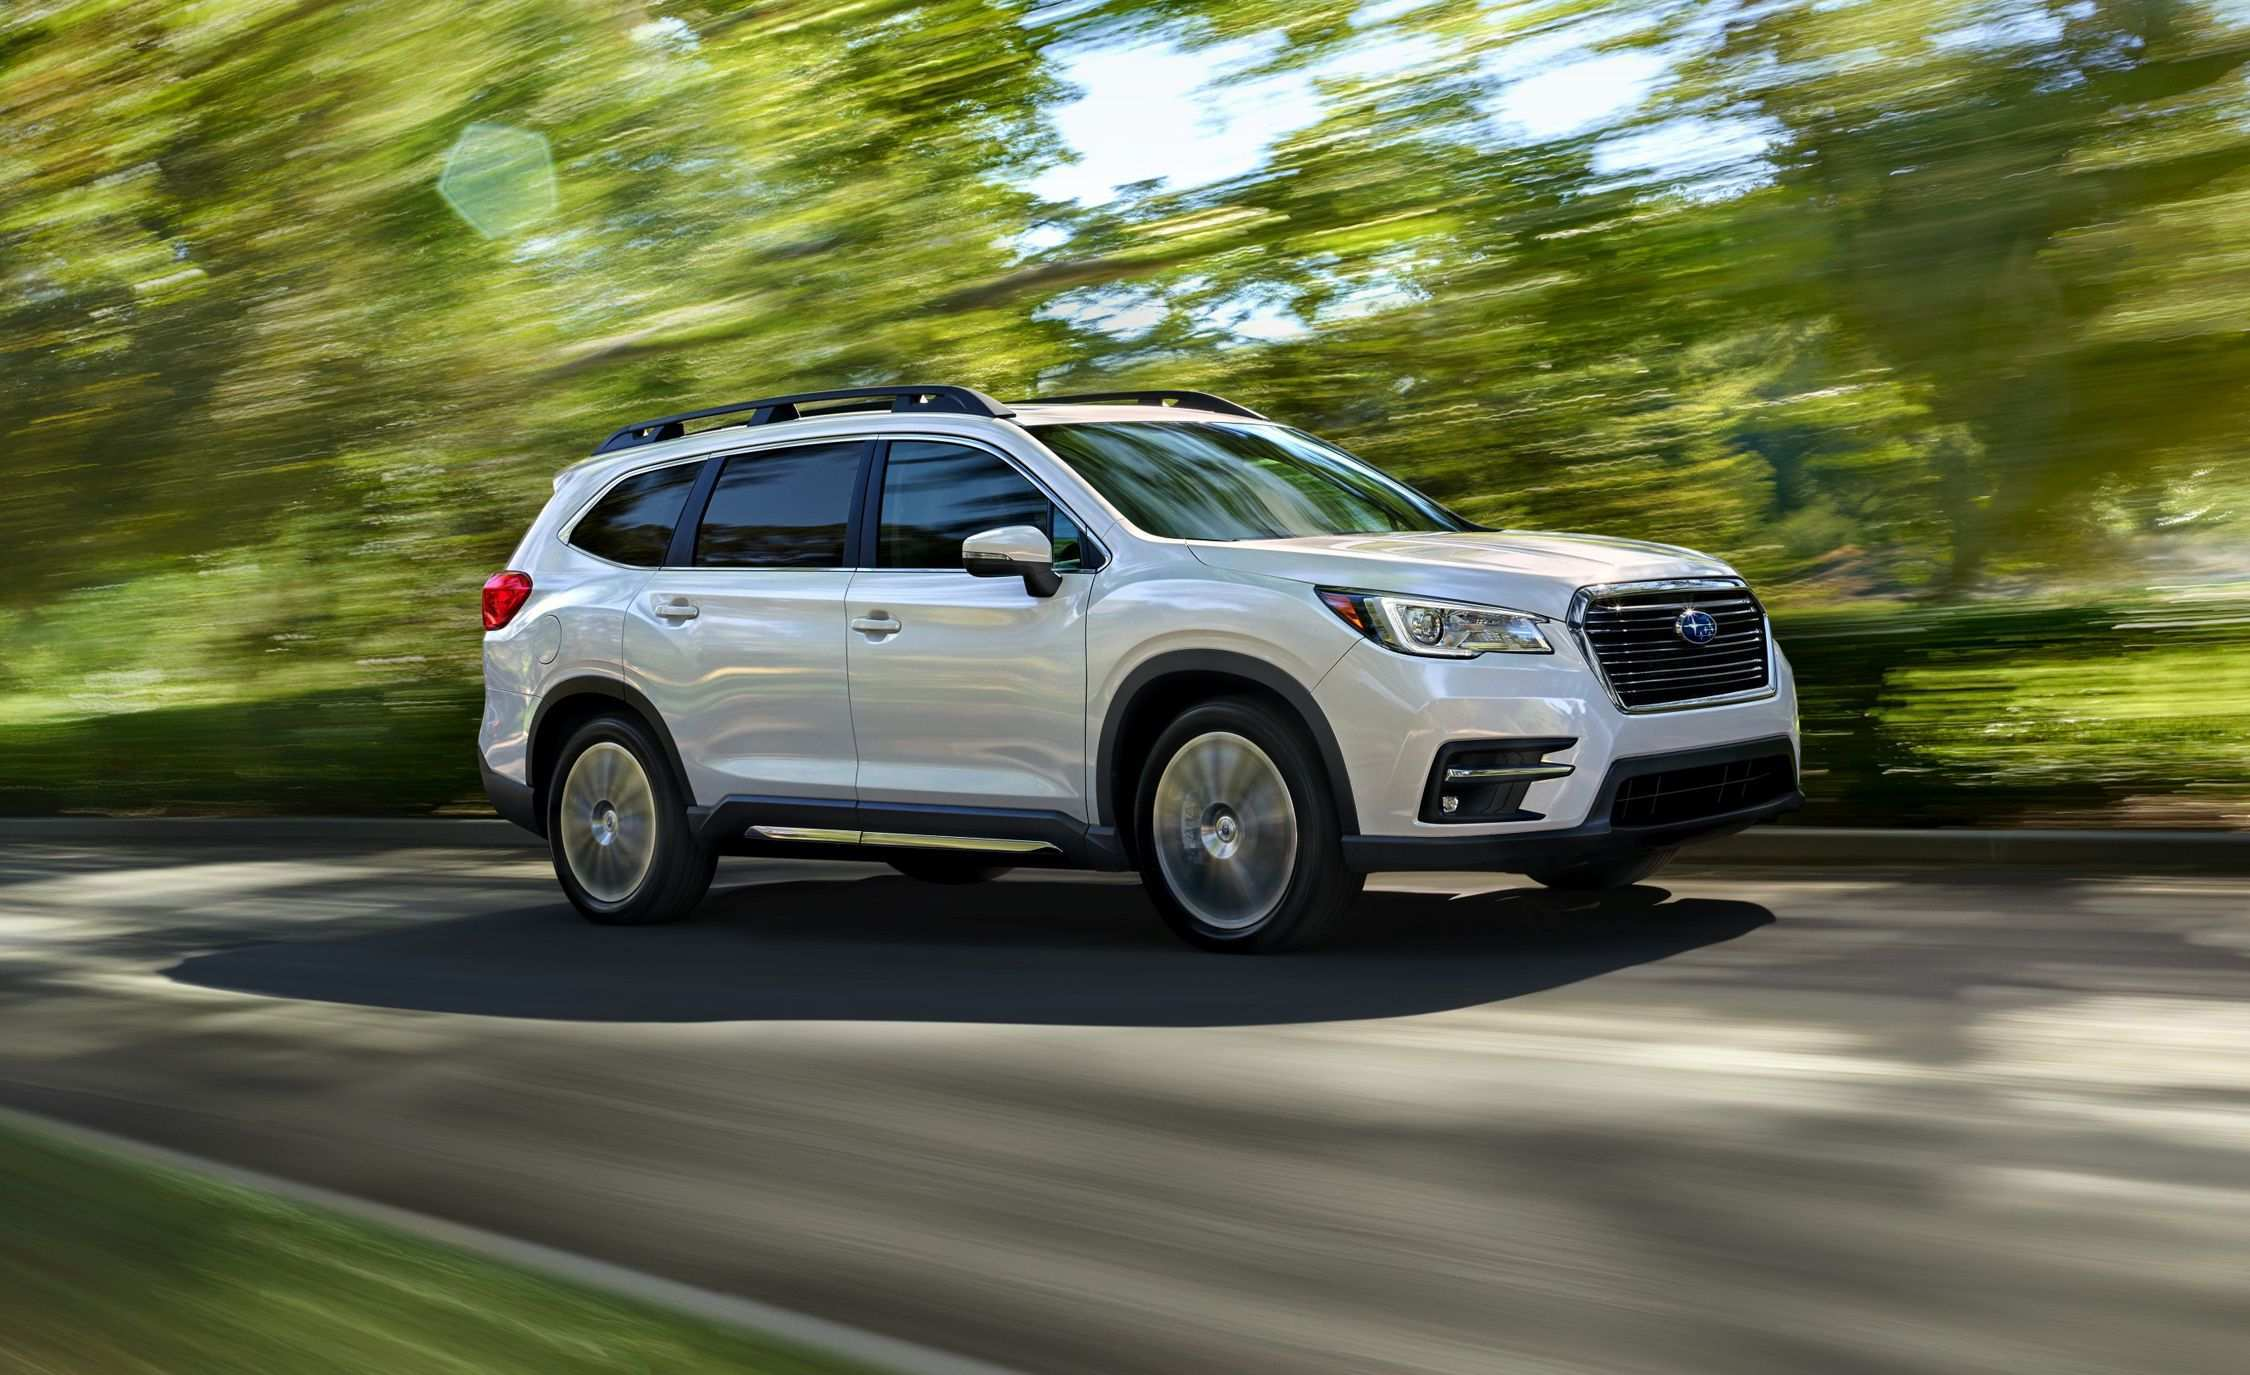 68 Best Review 2019 Subaru Ascent Fuel Economy New Review with 2019 Subaru Ascent Fuel Economy